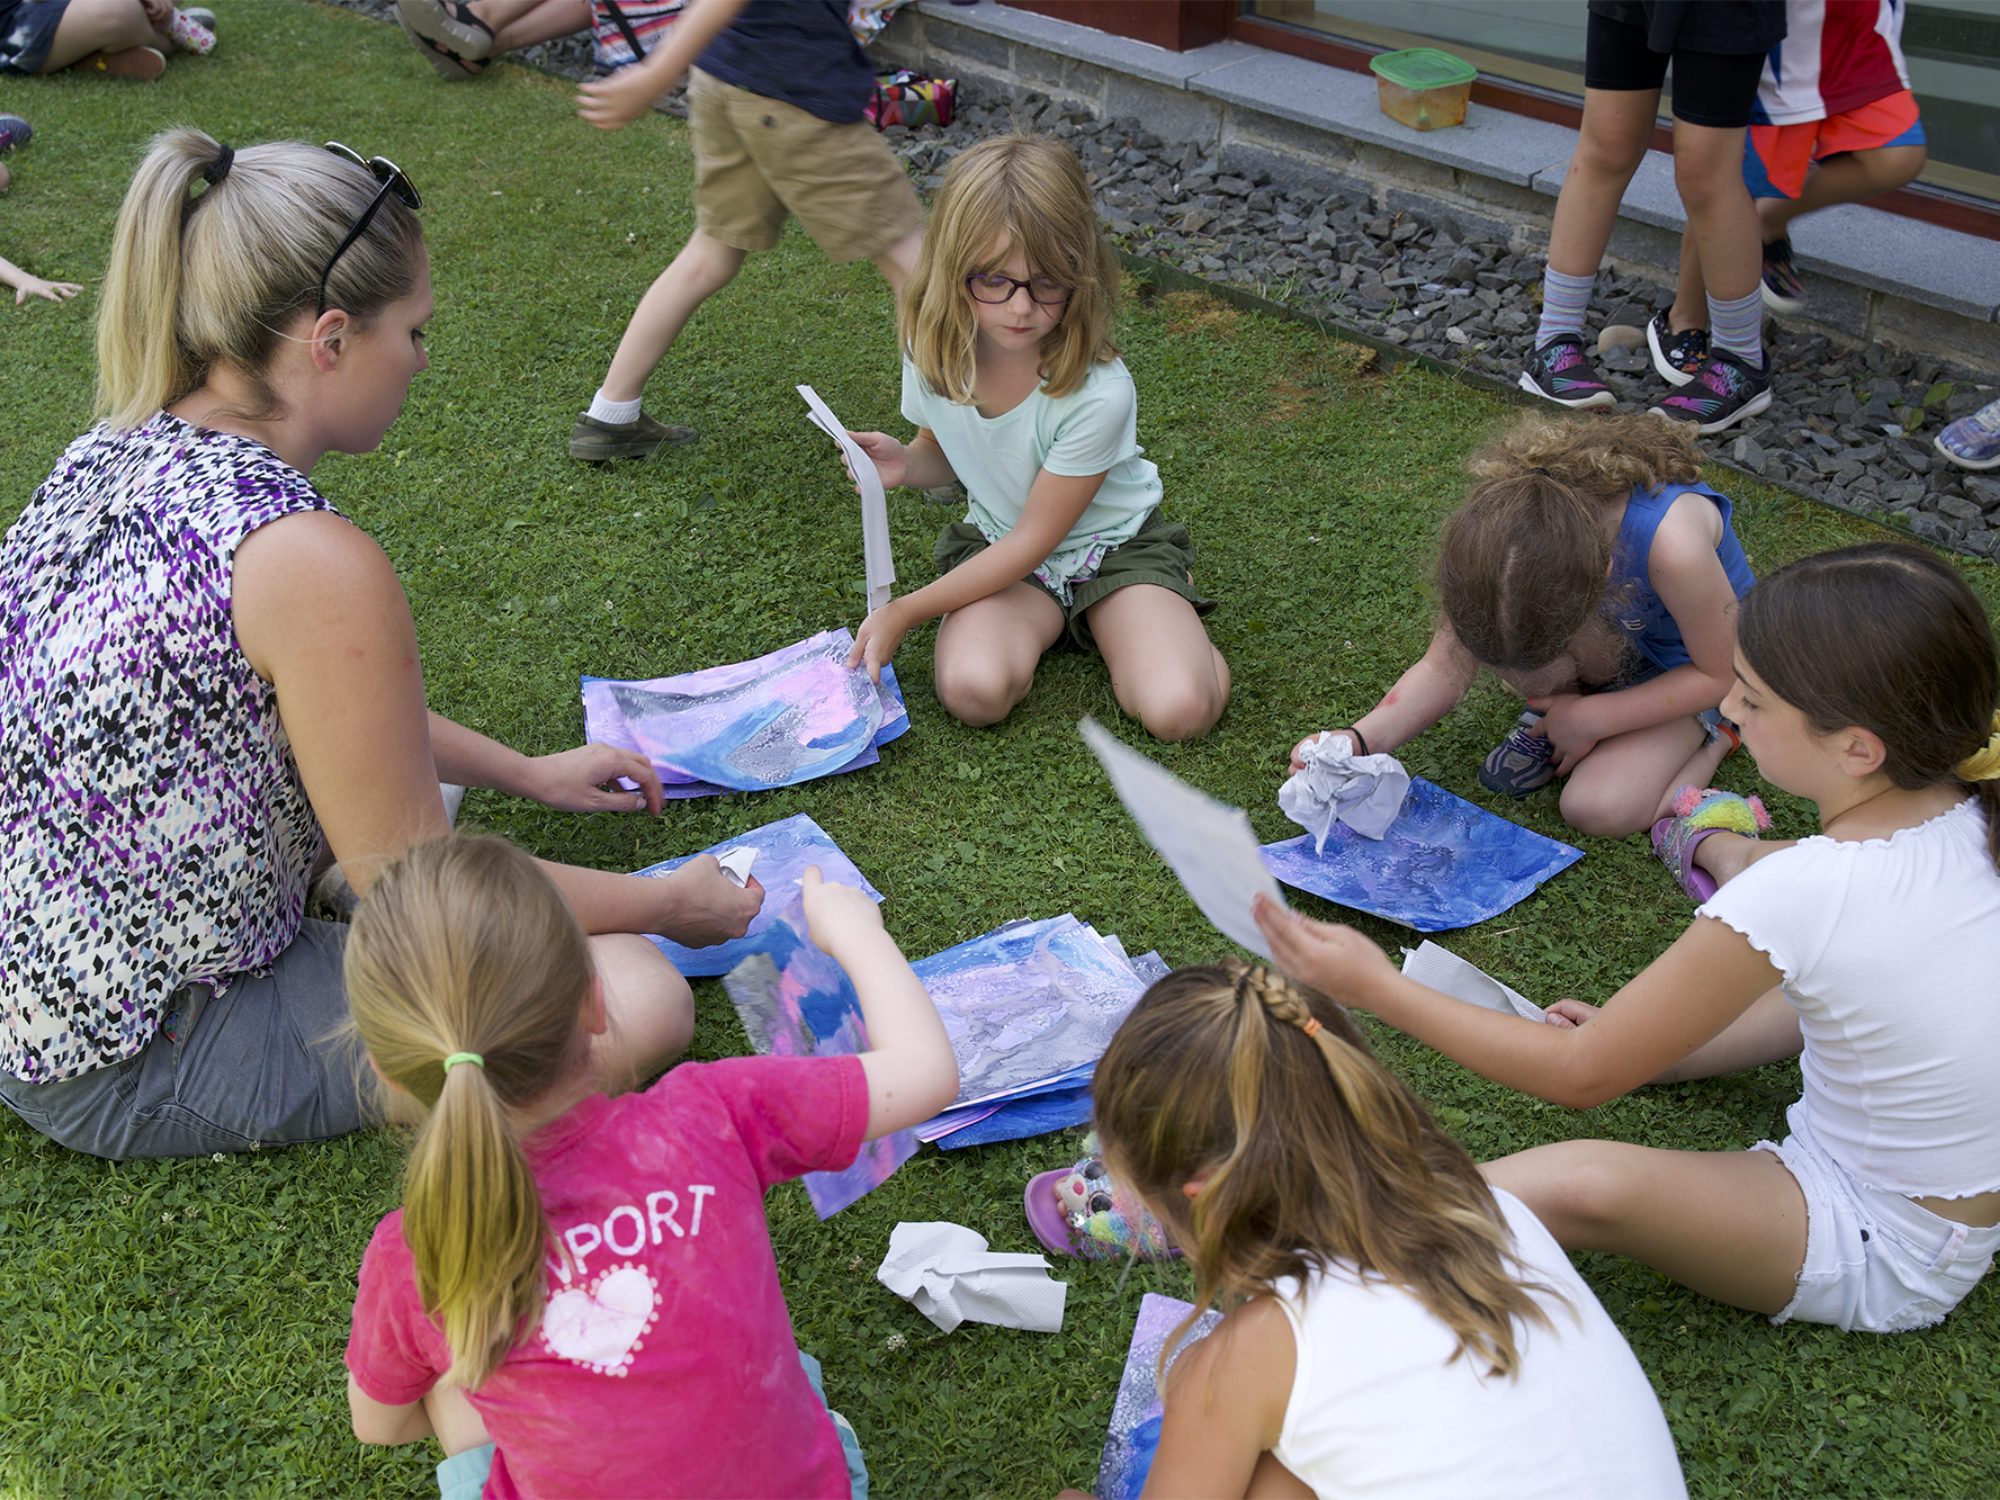 Children work on art projects outside